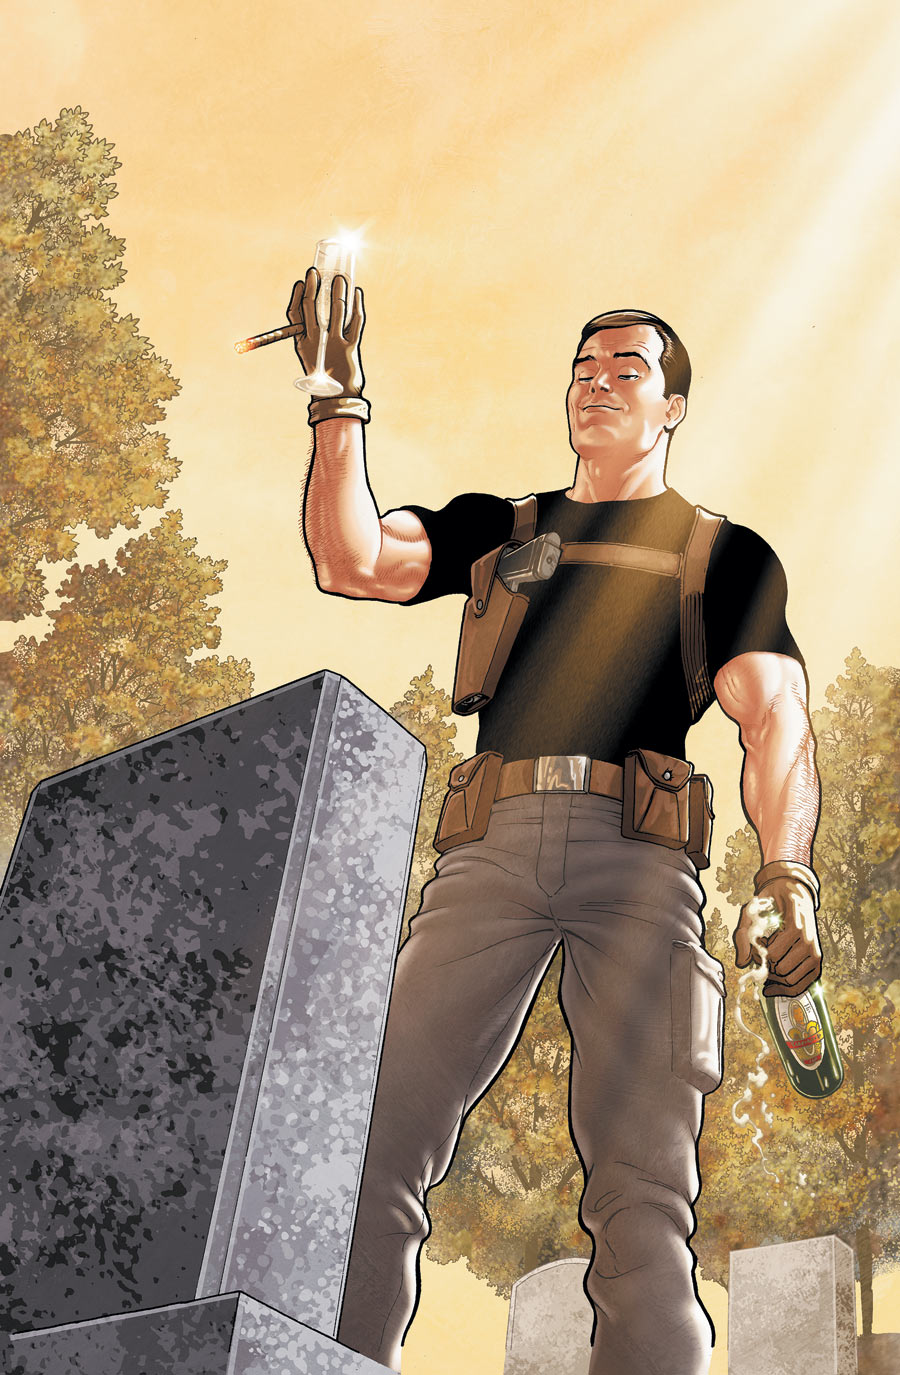 Maxwell Lord IV (New Earth)